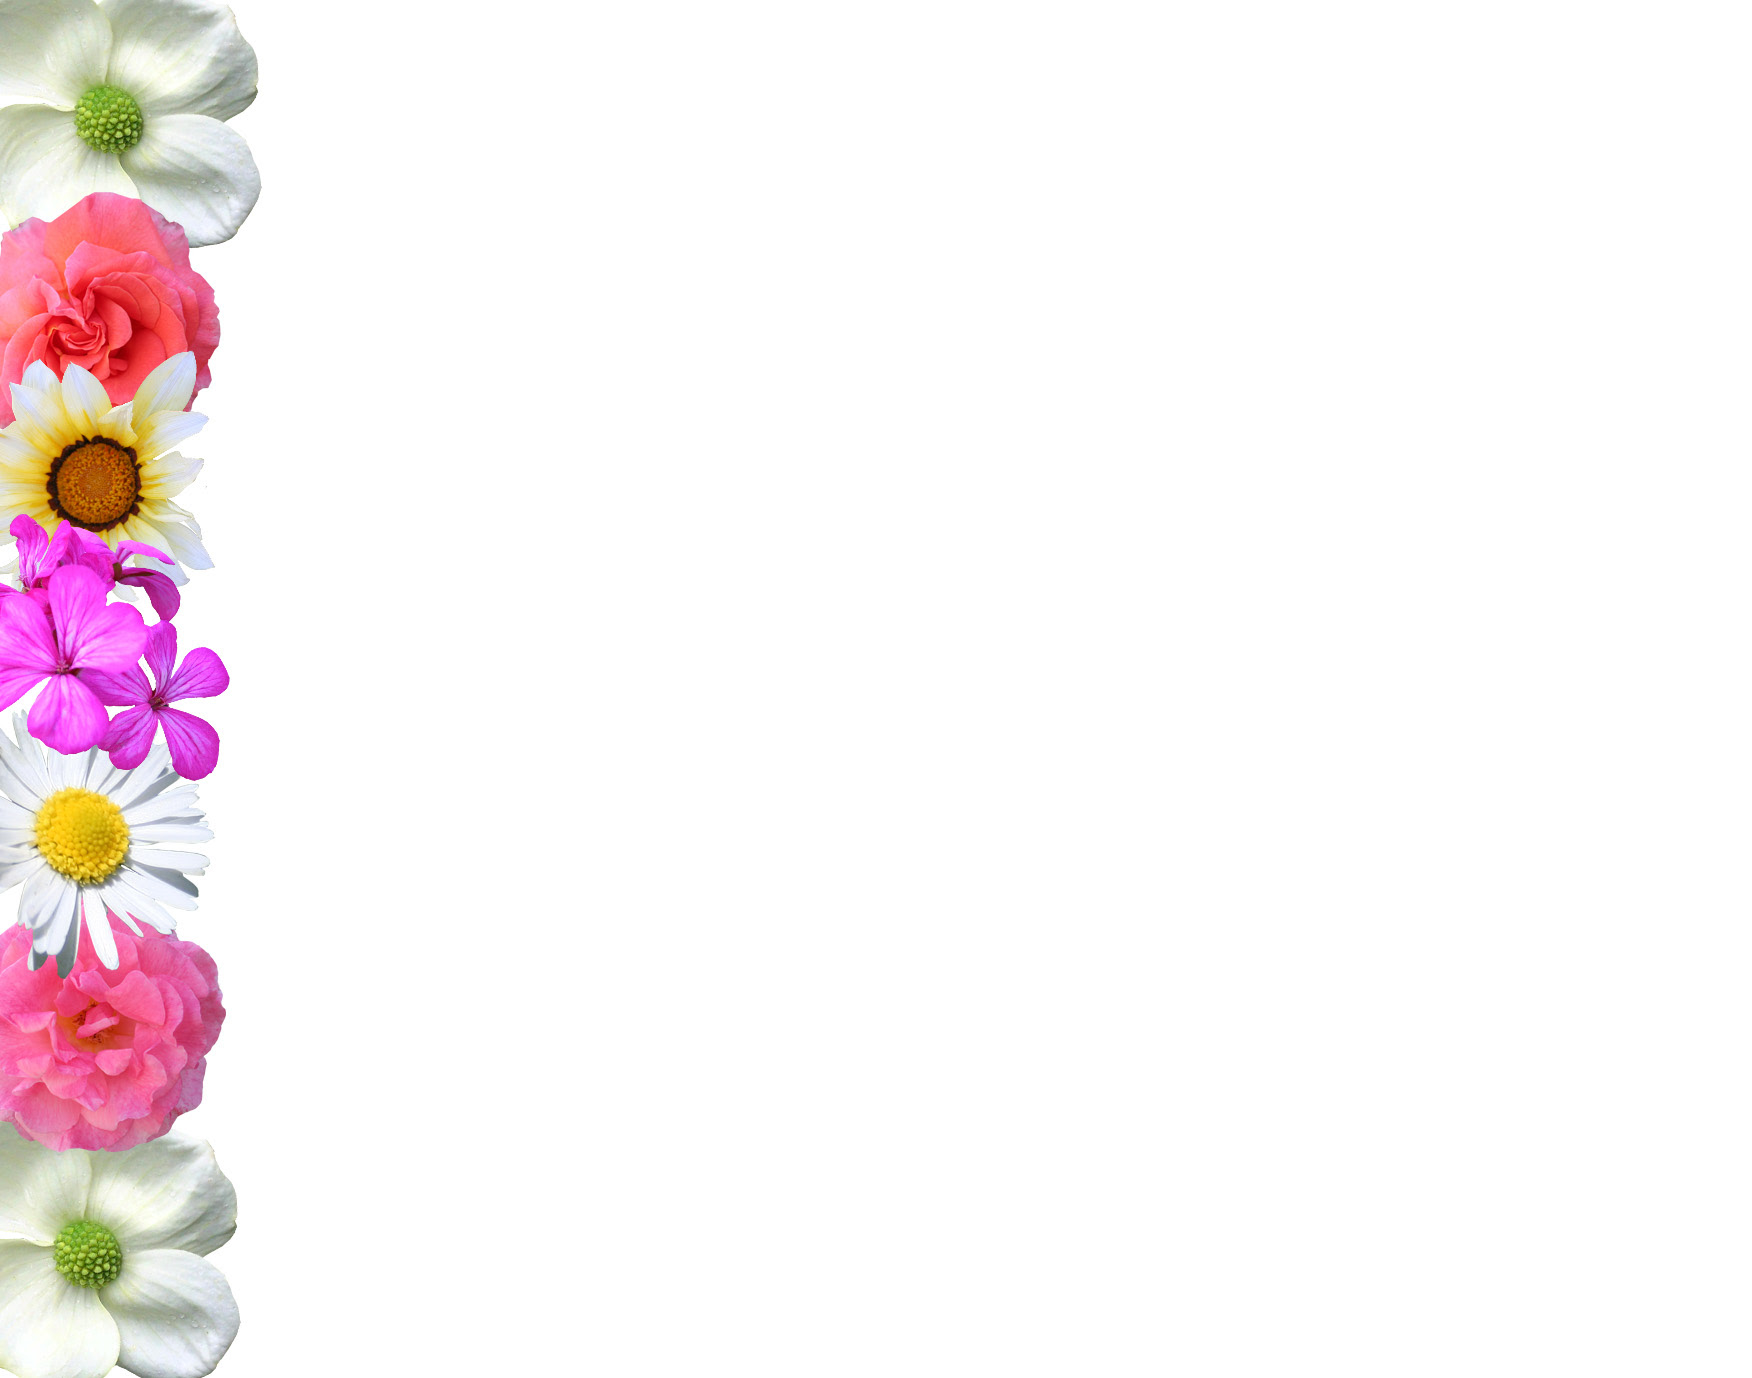 Floral Side Border Design Png